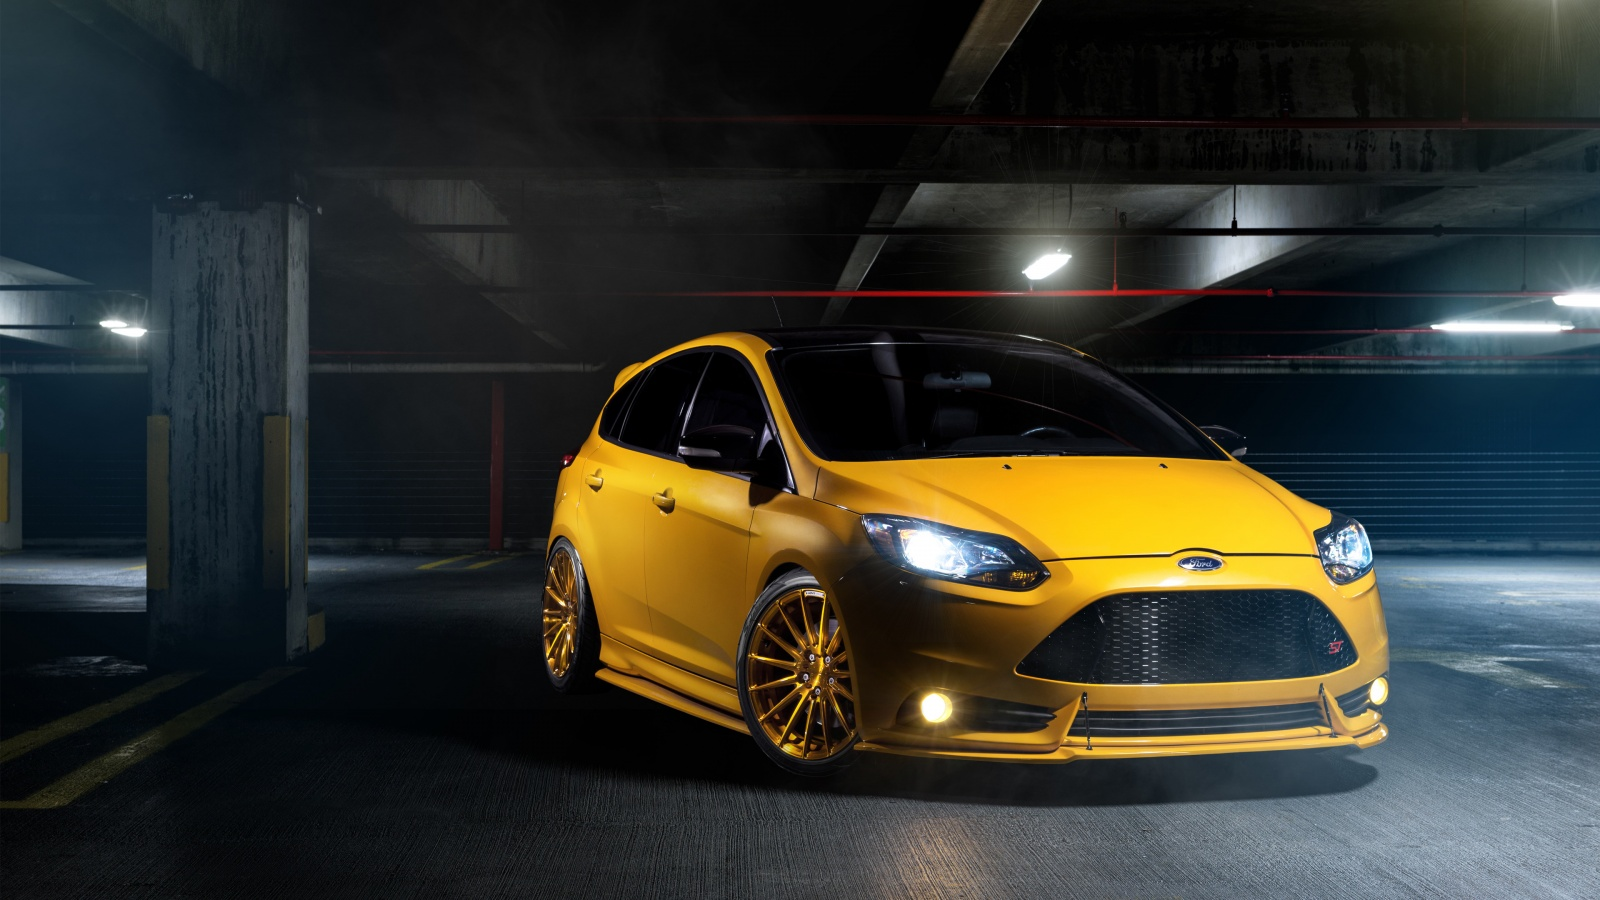 Ford Focus ST Wallpaper HD Car Wallpapers 1600x900